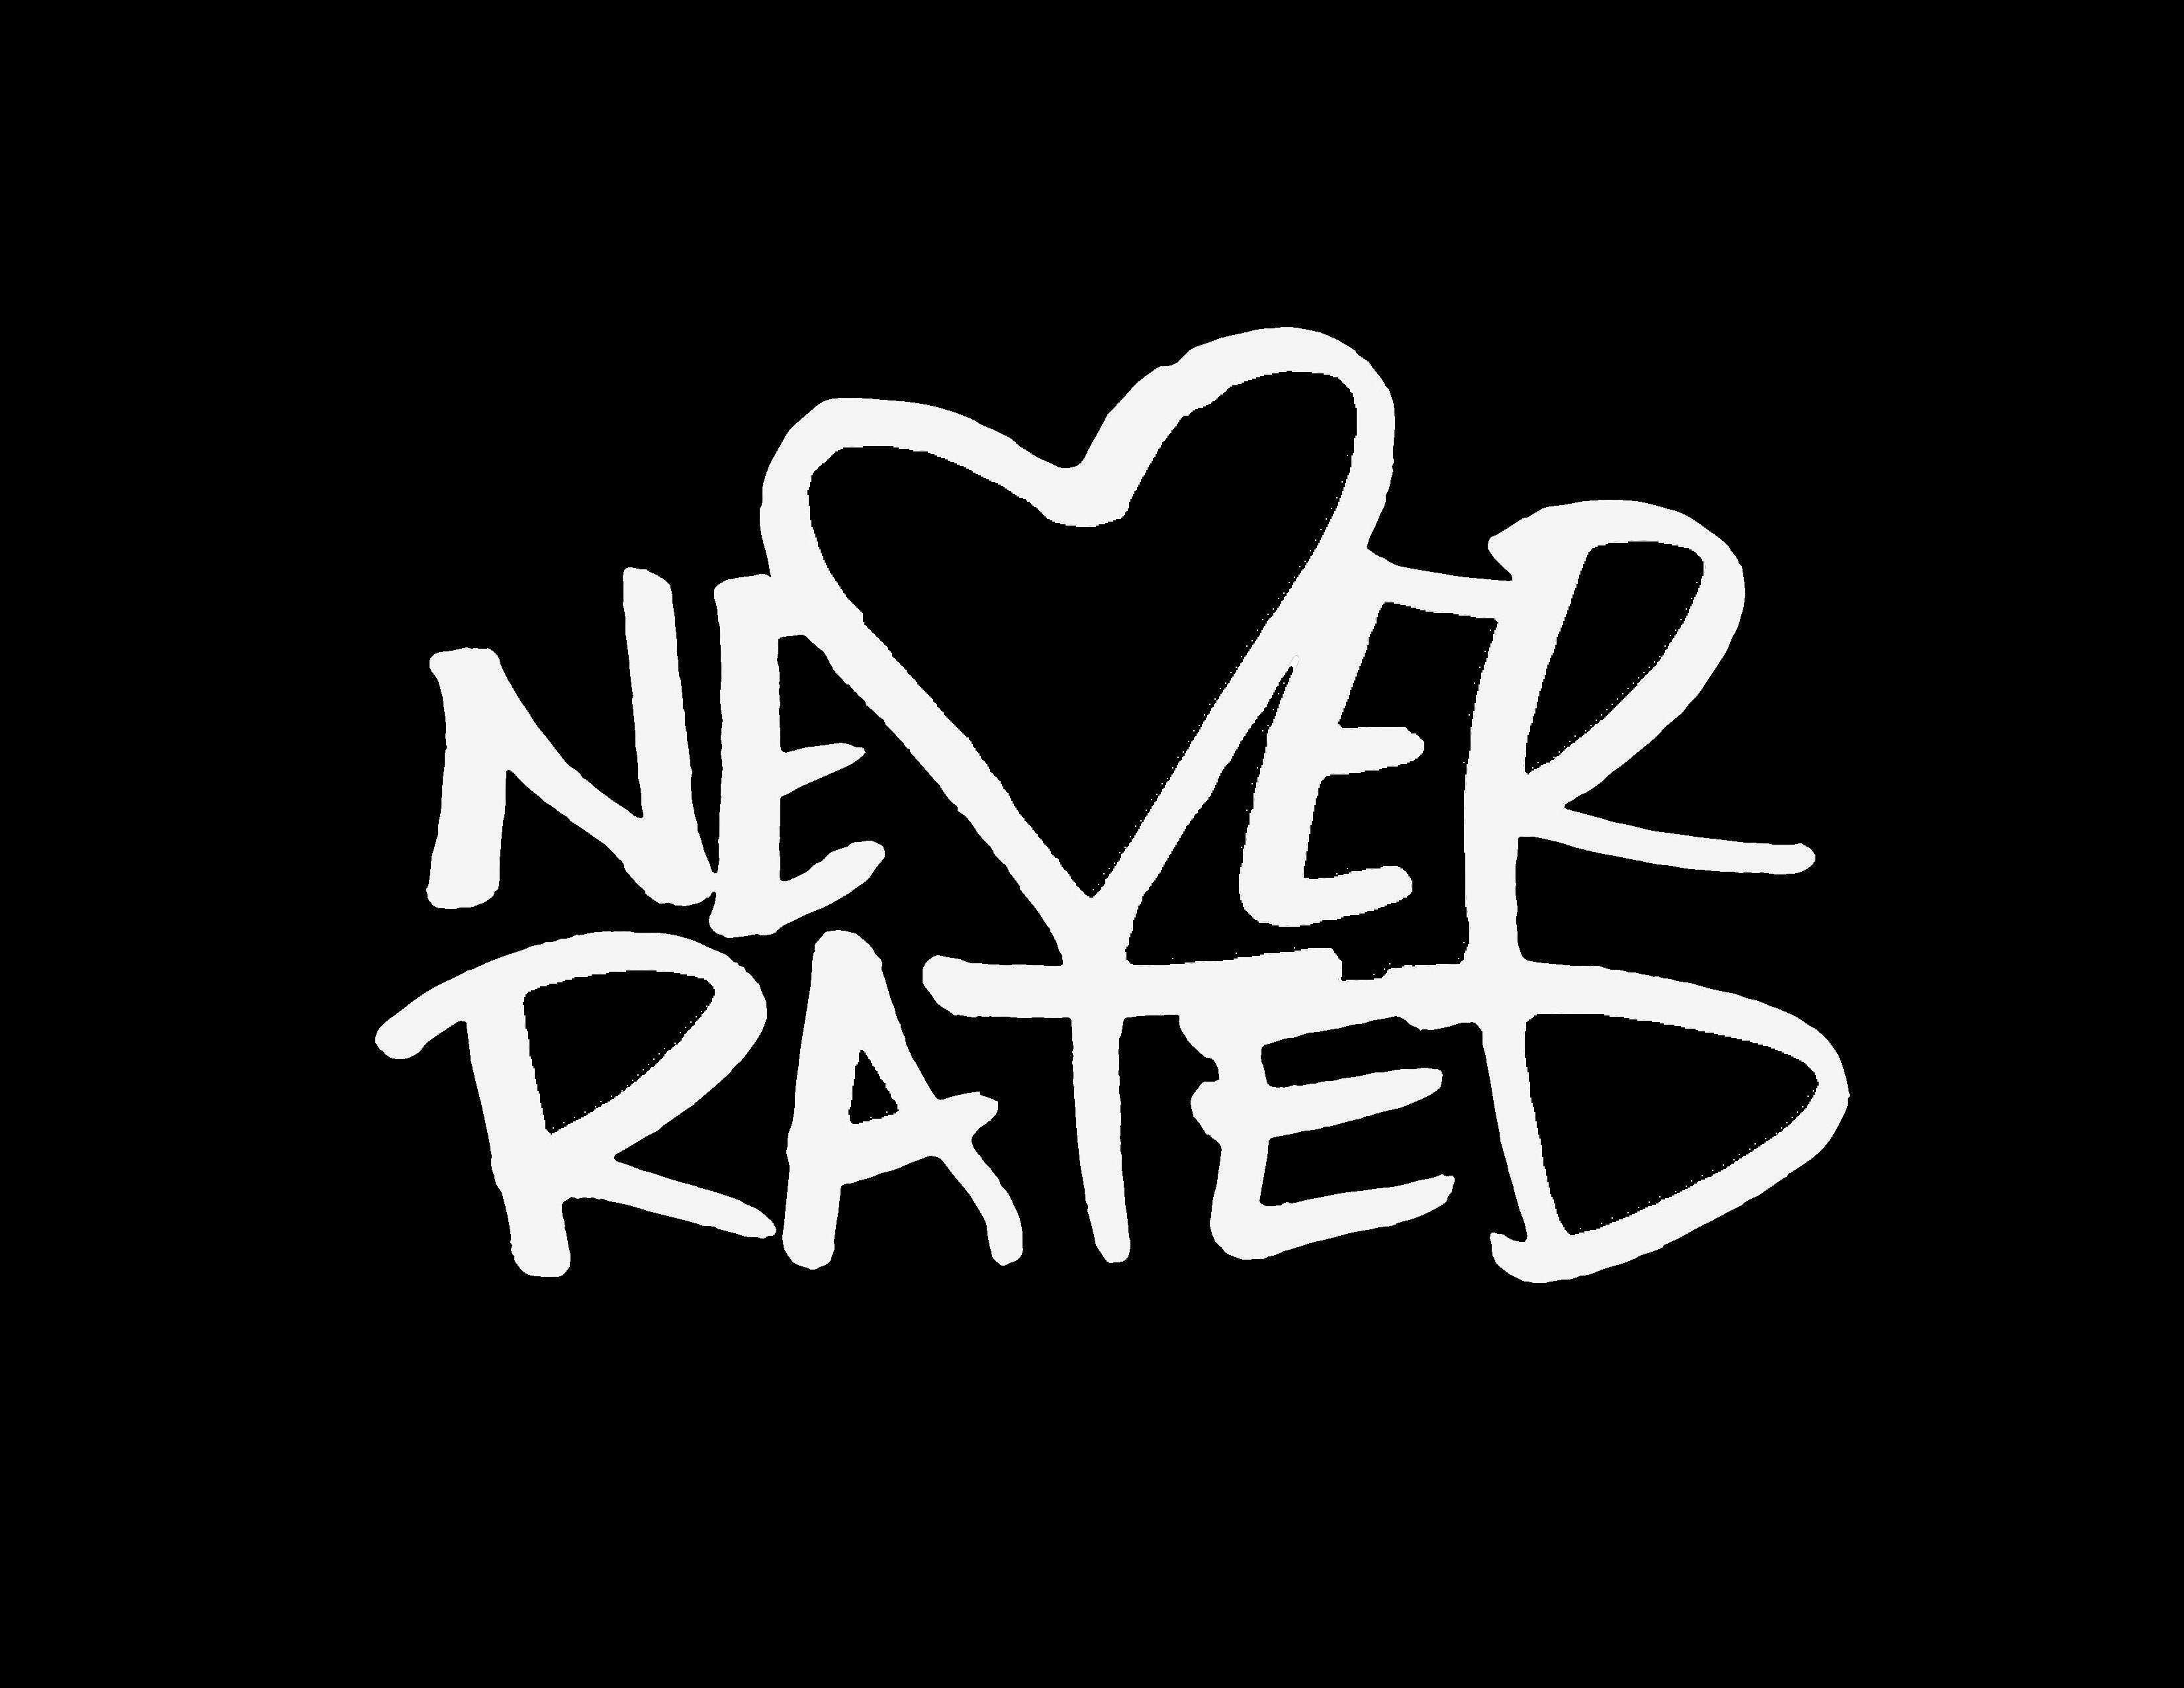 Never Rated